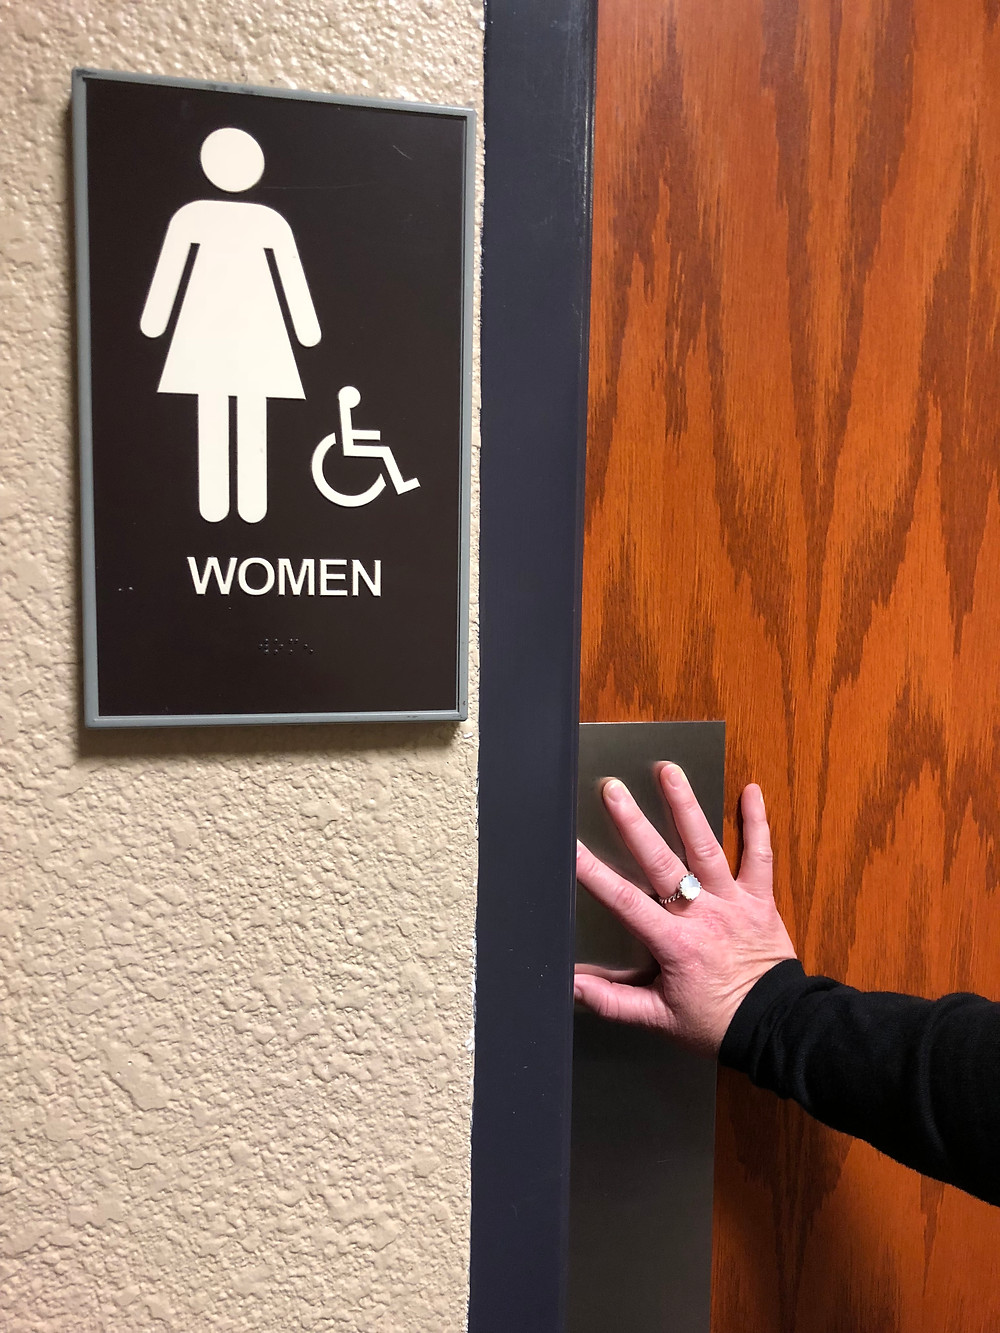 woman going into the women's restroom